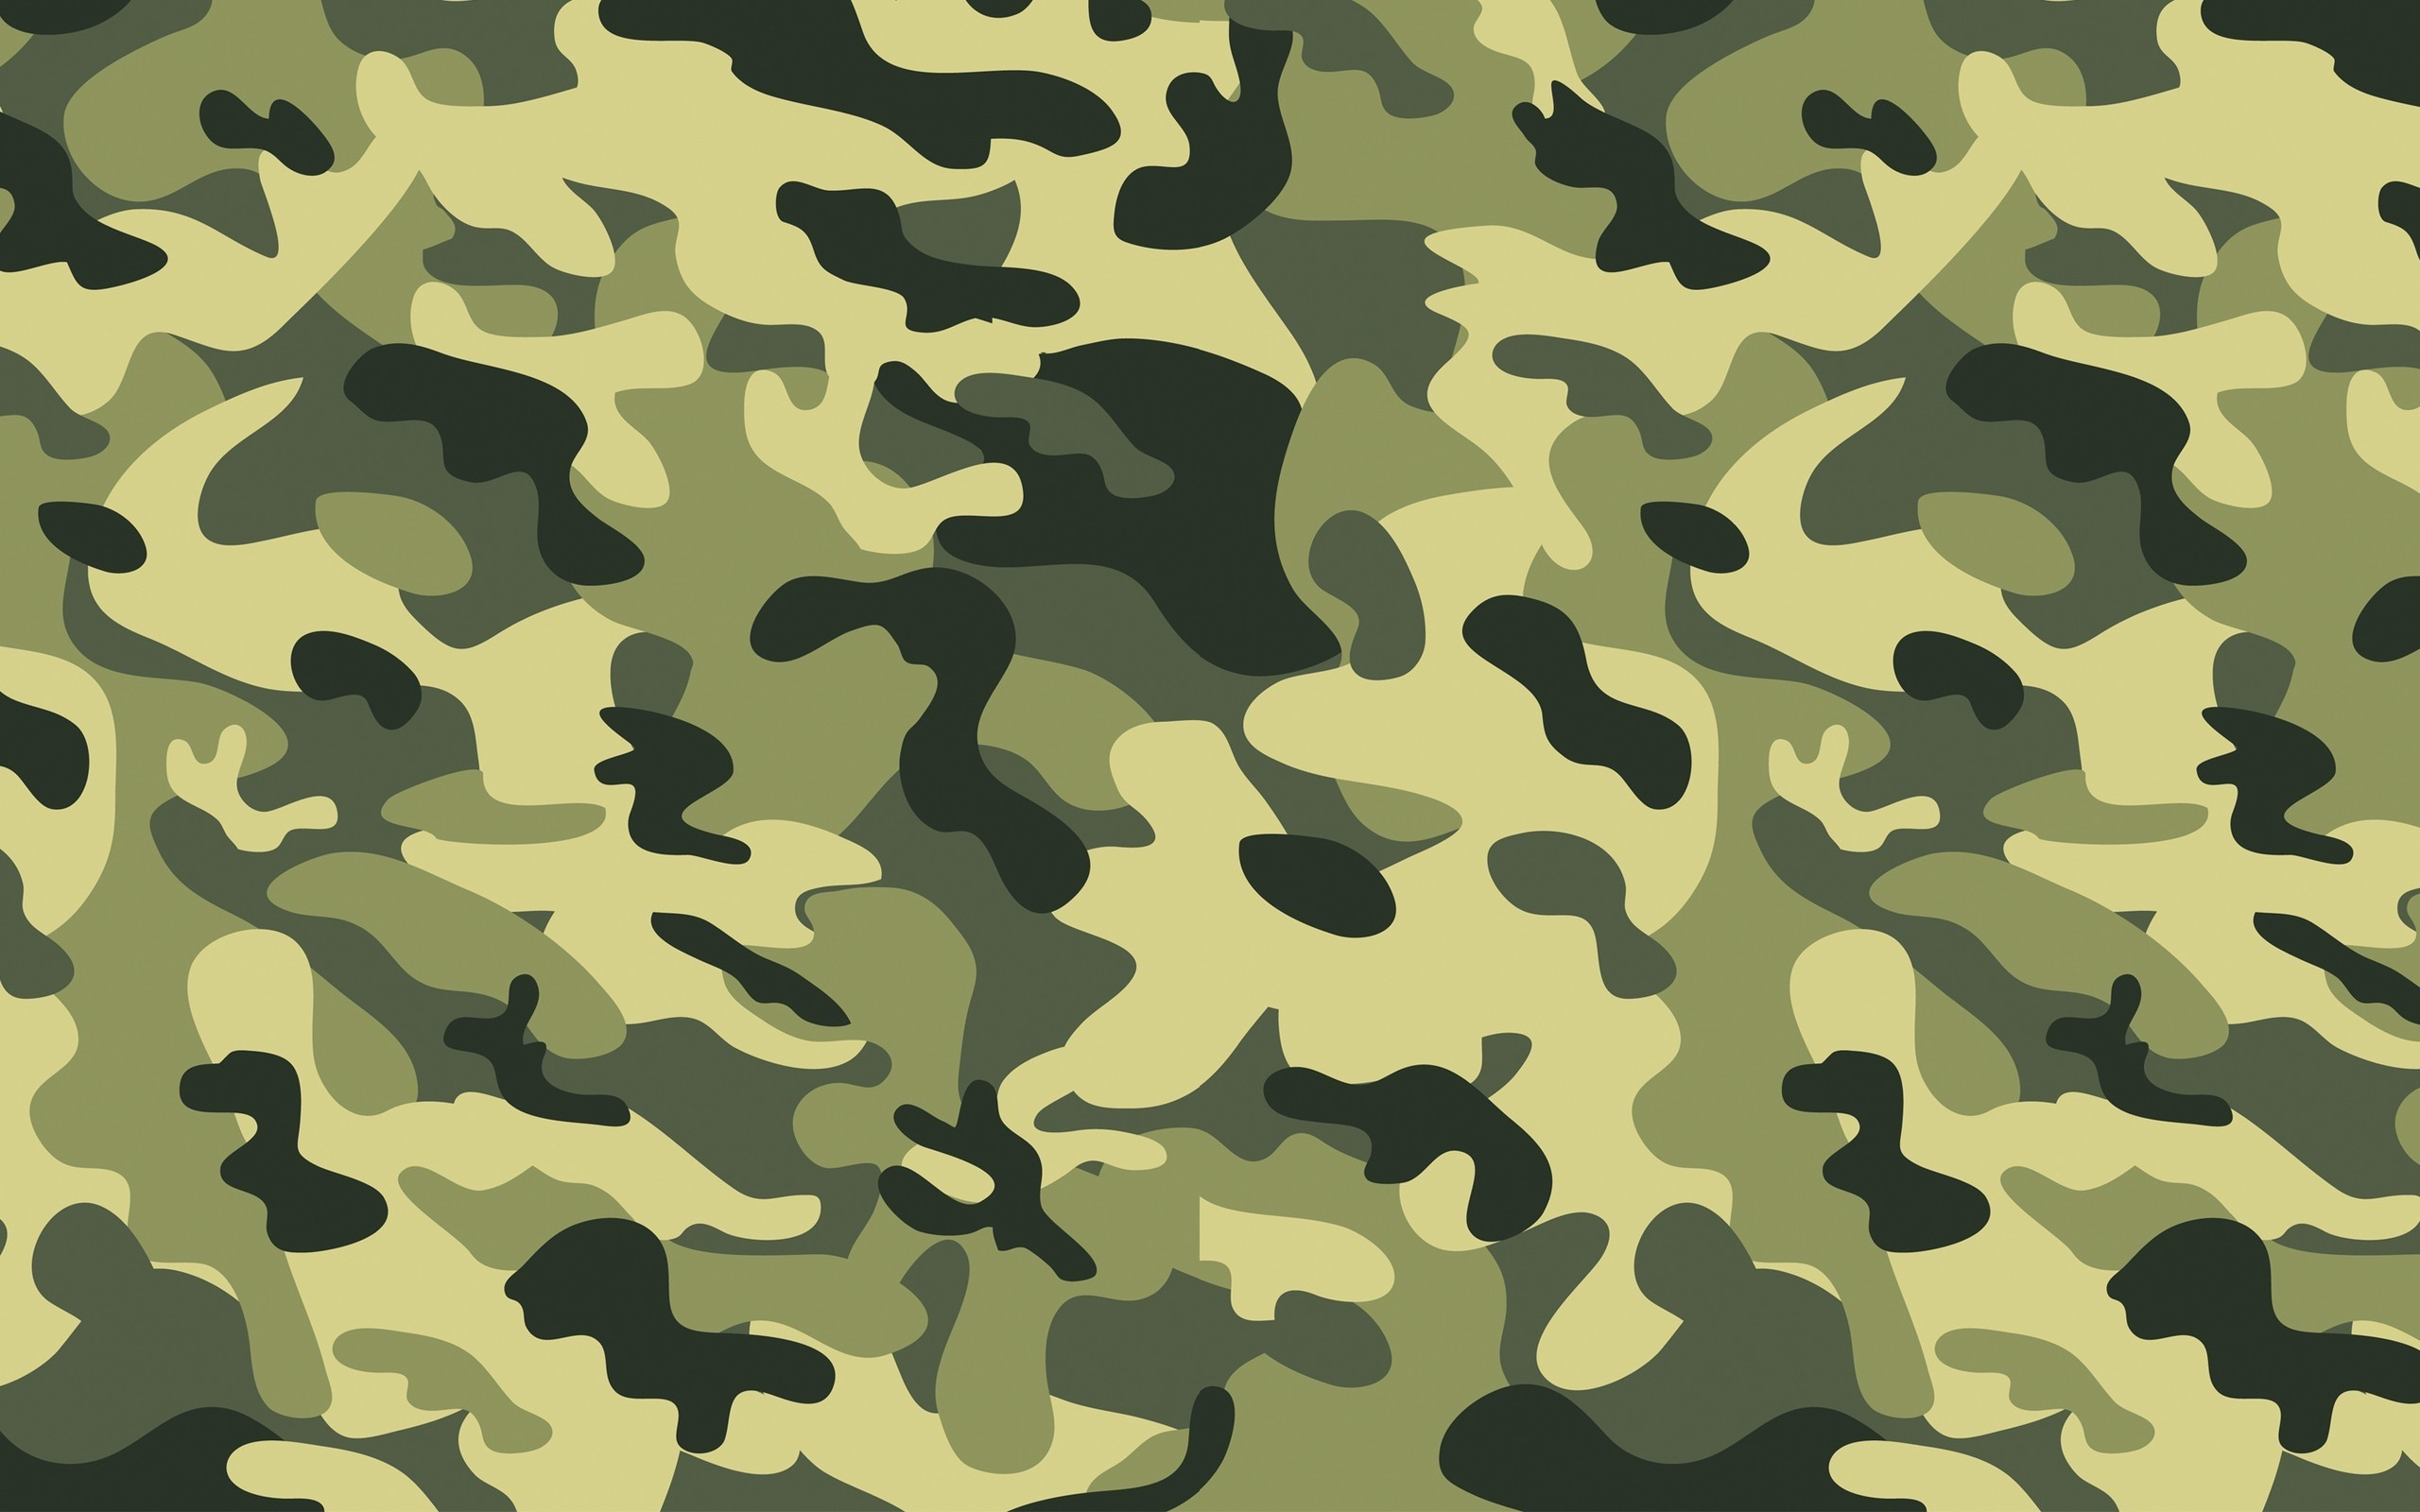 28 Free Camouflage Hd And Desktop Backgrounds: 2 Camouflage Fonds D'écran HD